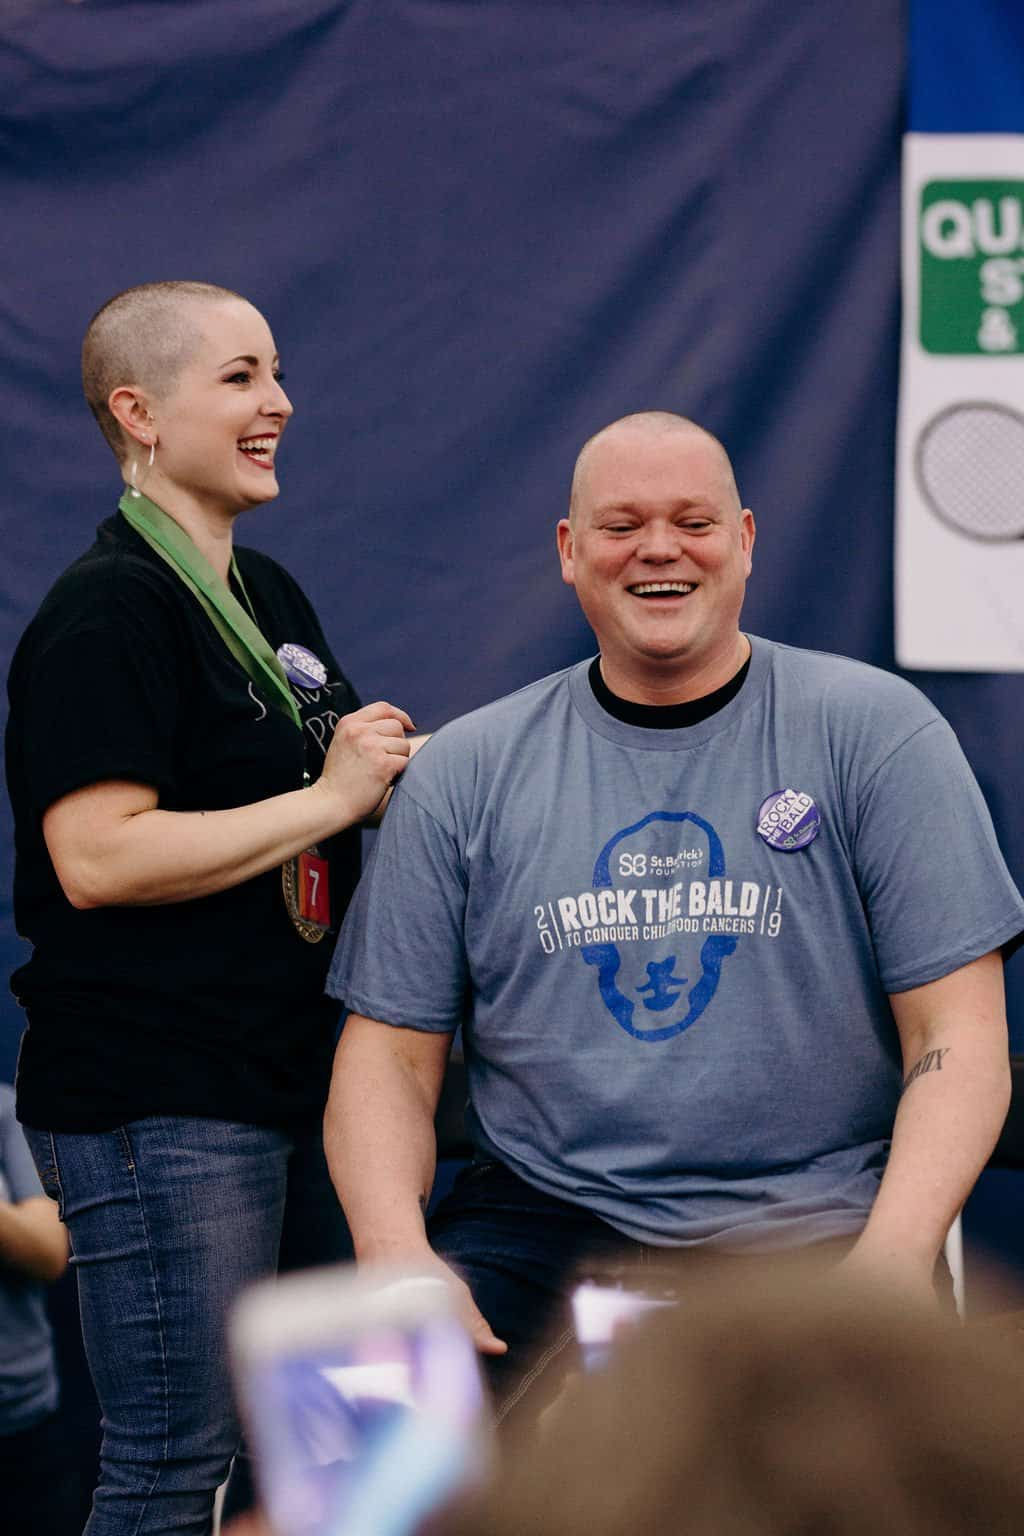 St. Baldricks | I bet you wouldn't shave your head 218